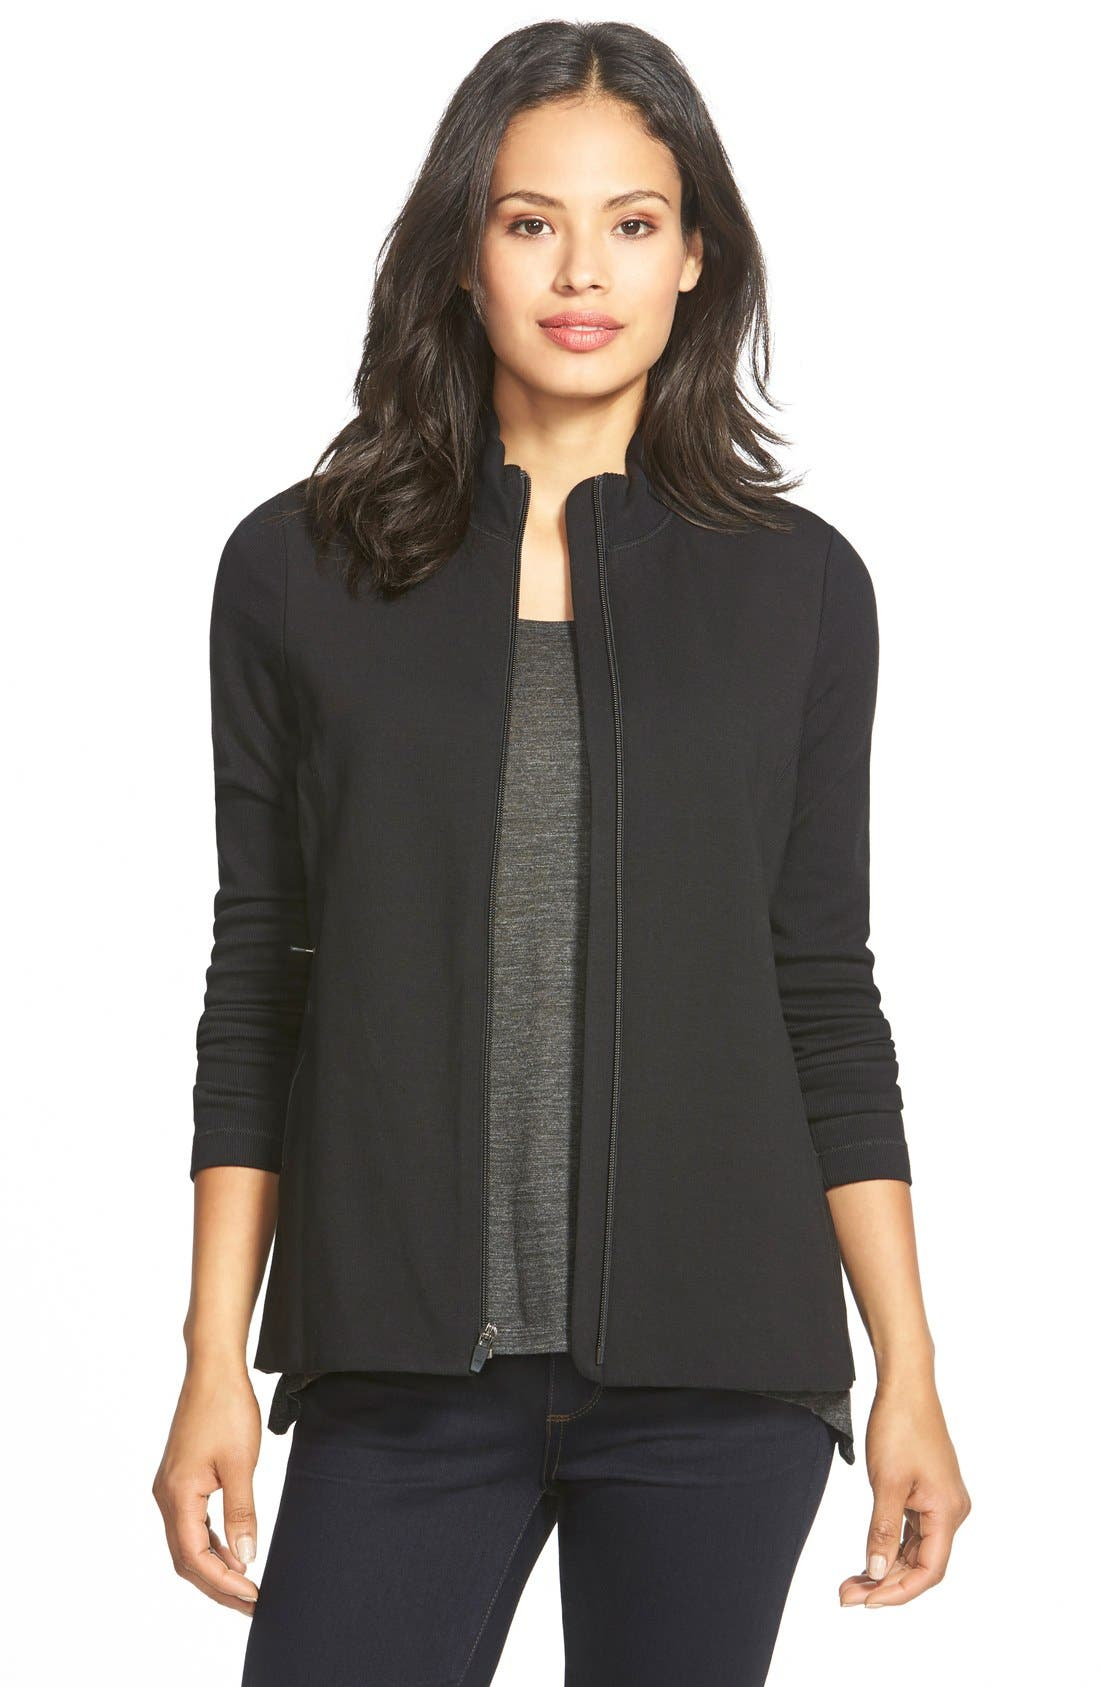 Main Image - Eileen Fisher Mixed Organic Cotton Stretch Knit Jacket